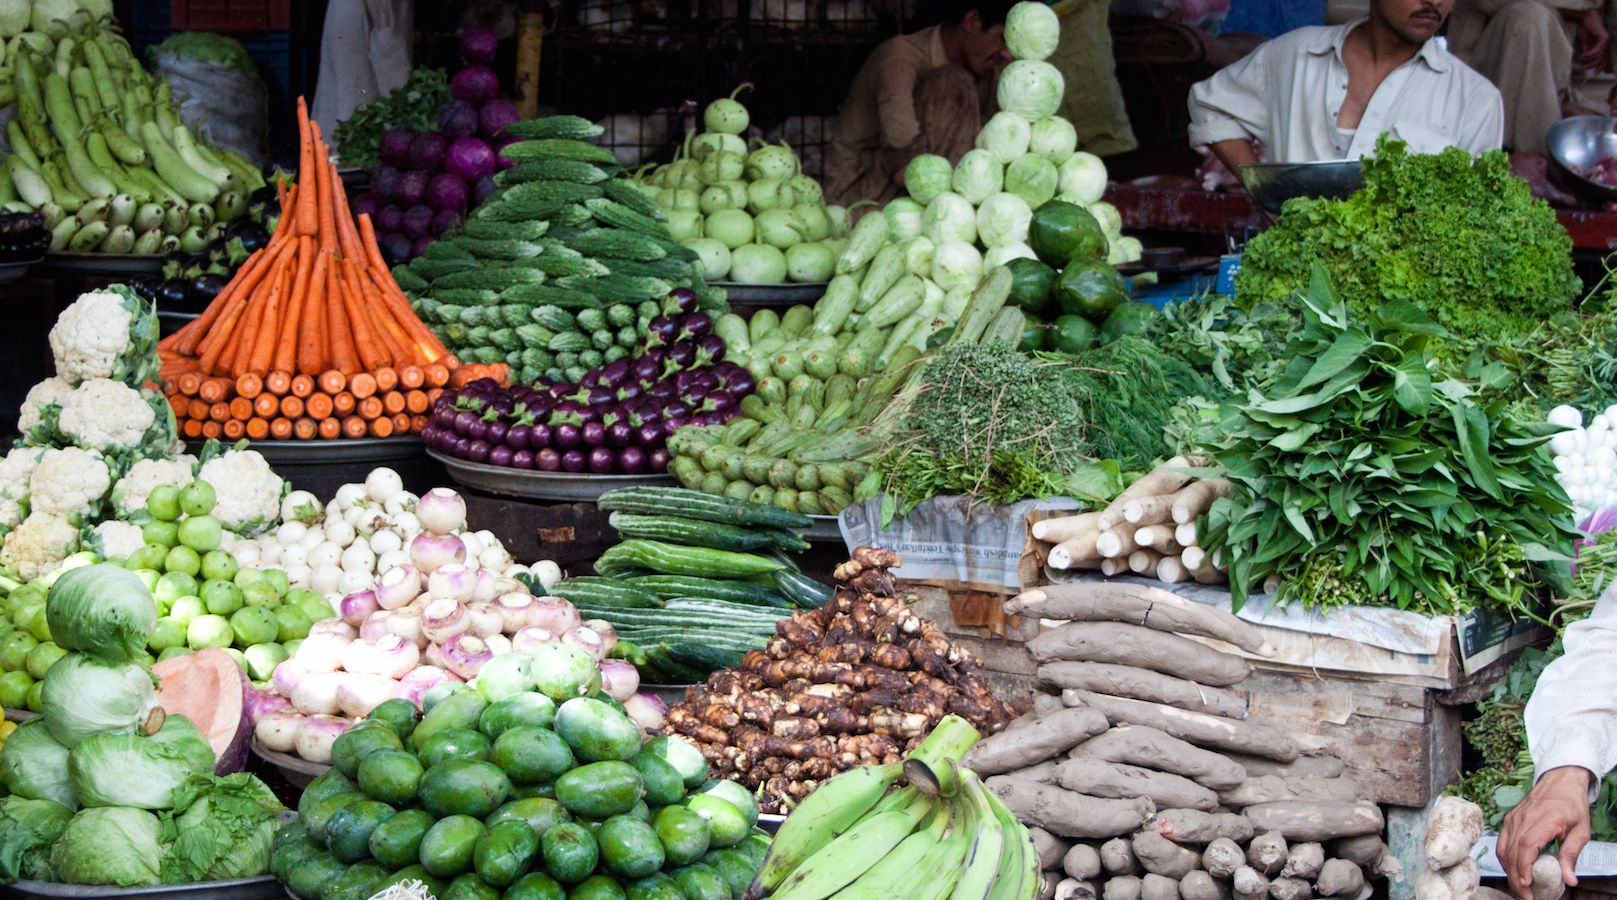 A vegetable stall at a market